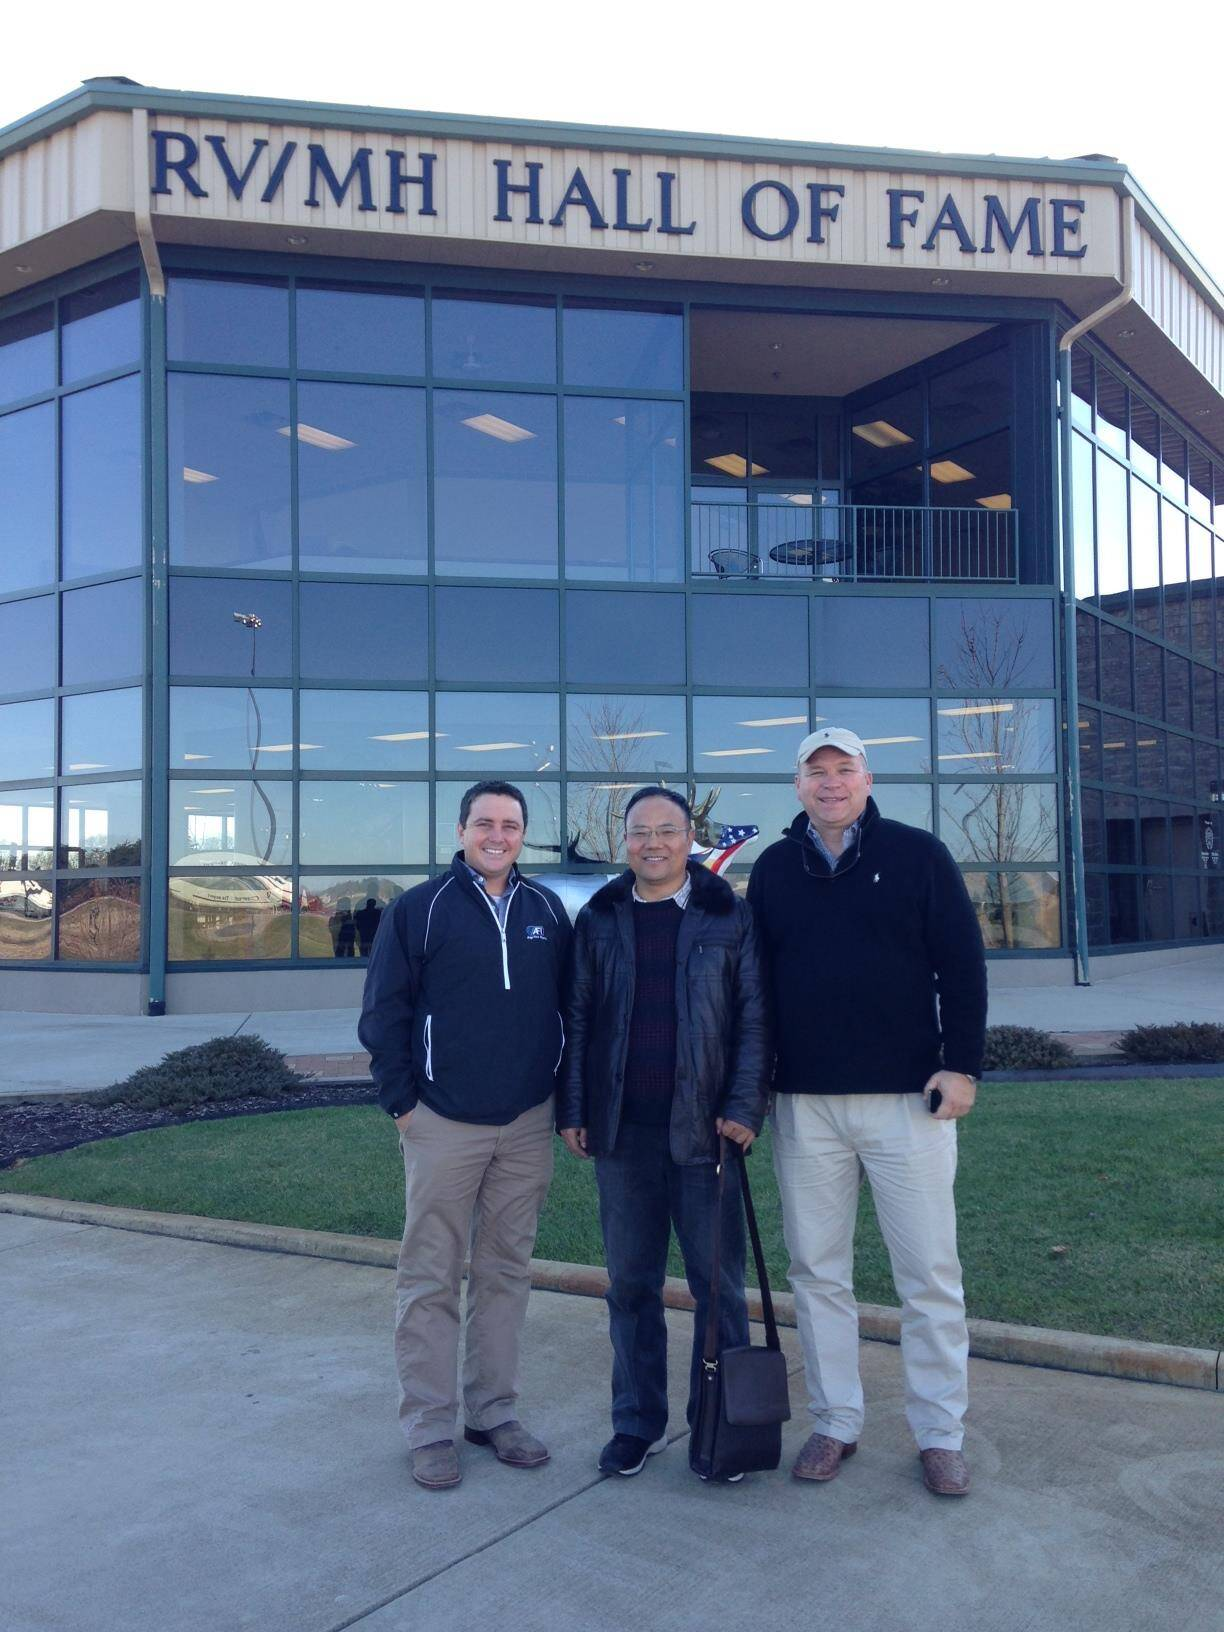 Robert (Left) Todd Wager (far right) with a lumbercore supplier visiting the RV hall of fame in Elkhart, IN